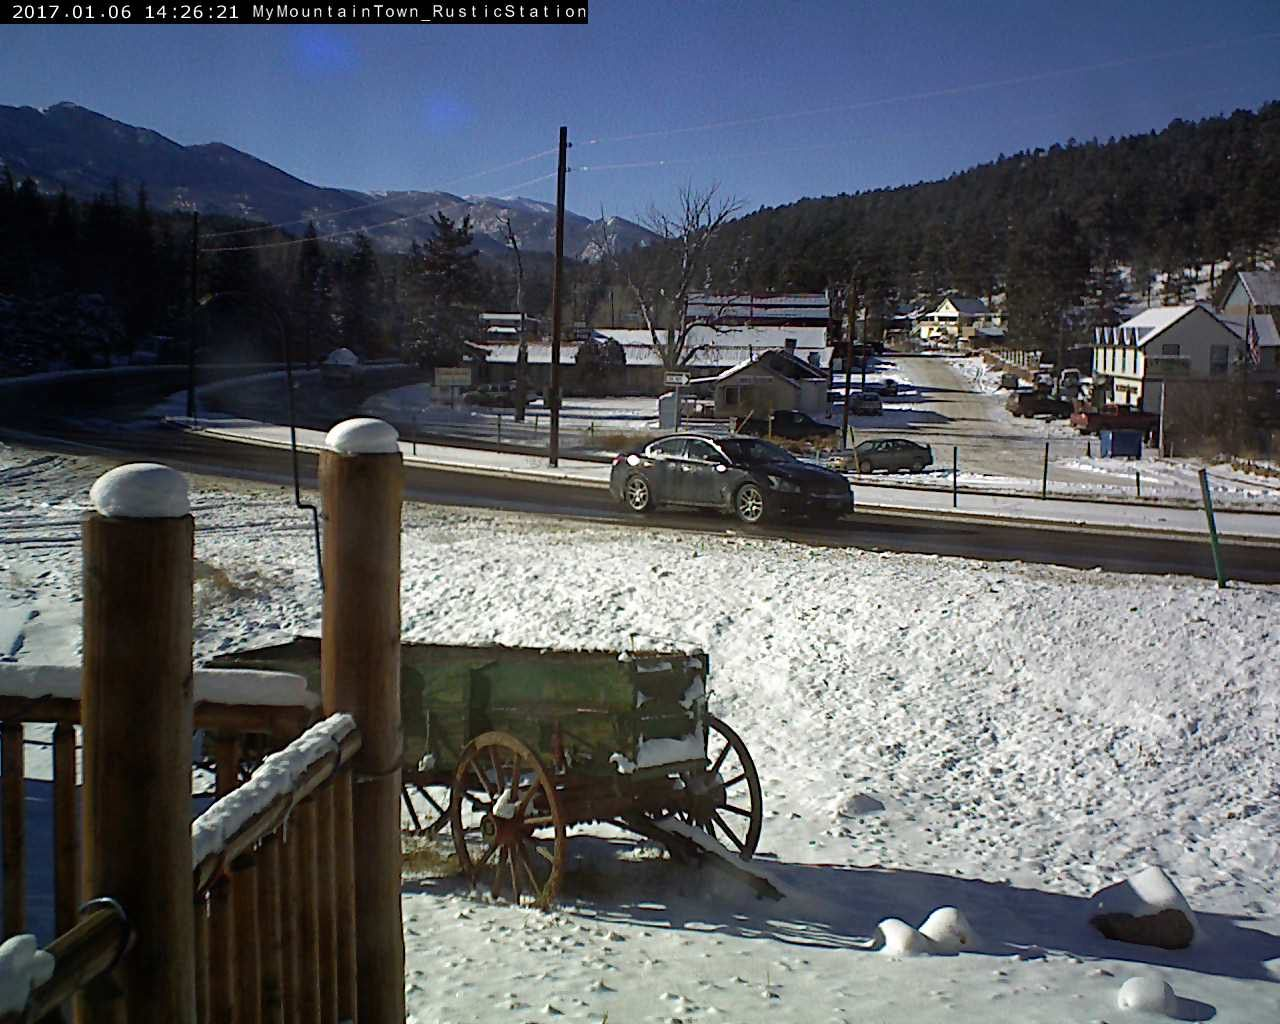 Our Downtown Bailey CO traffic webcam hosted at Rustic